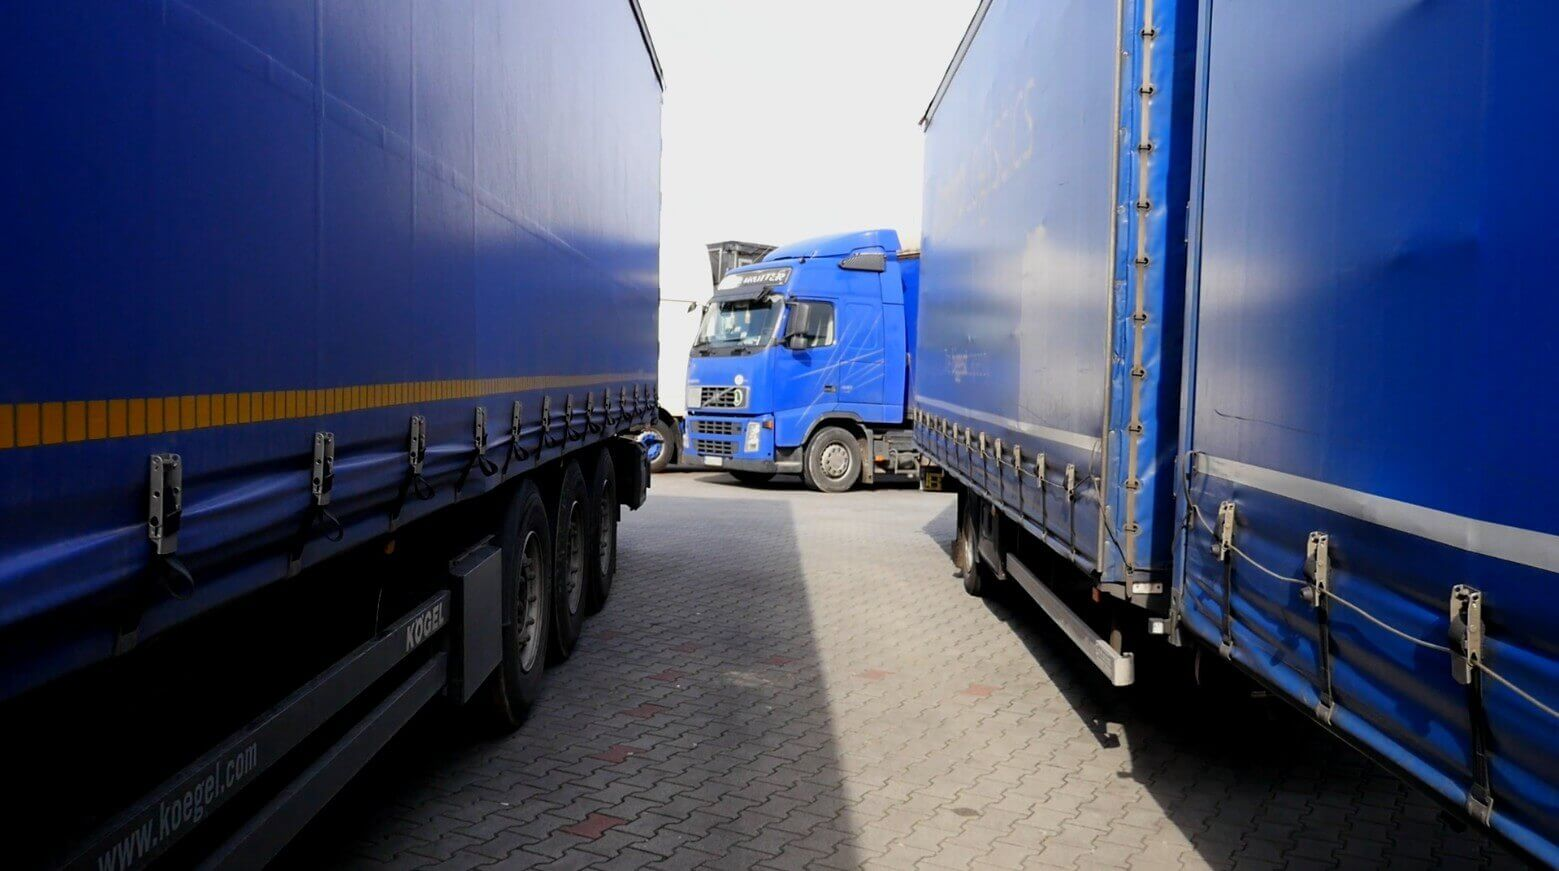 Report: Grant Shapps asks for £50m to fund lorry park improvements